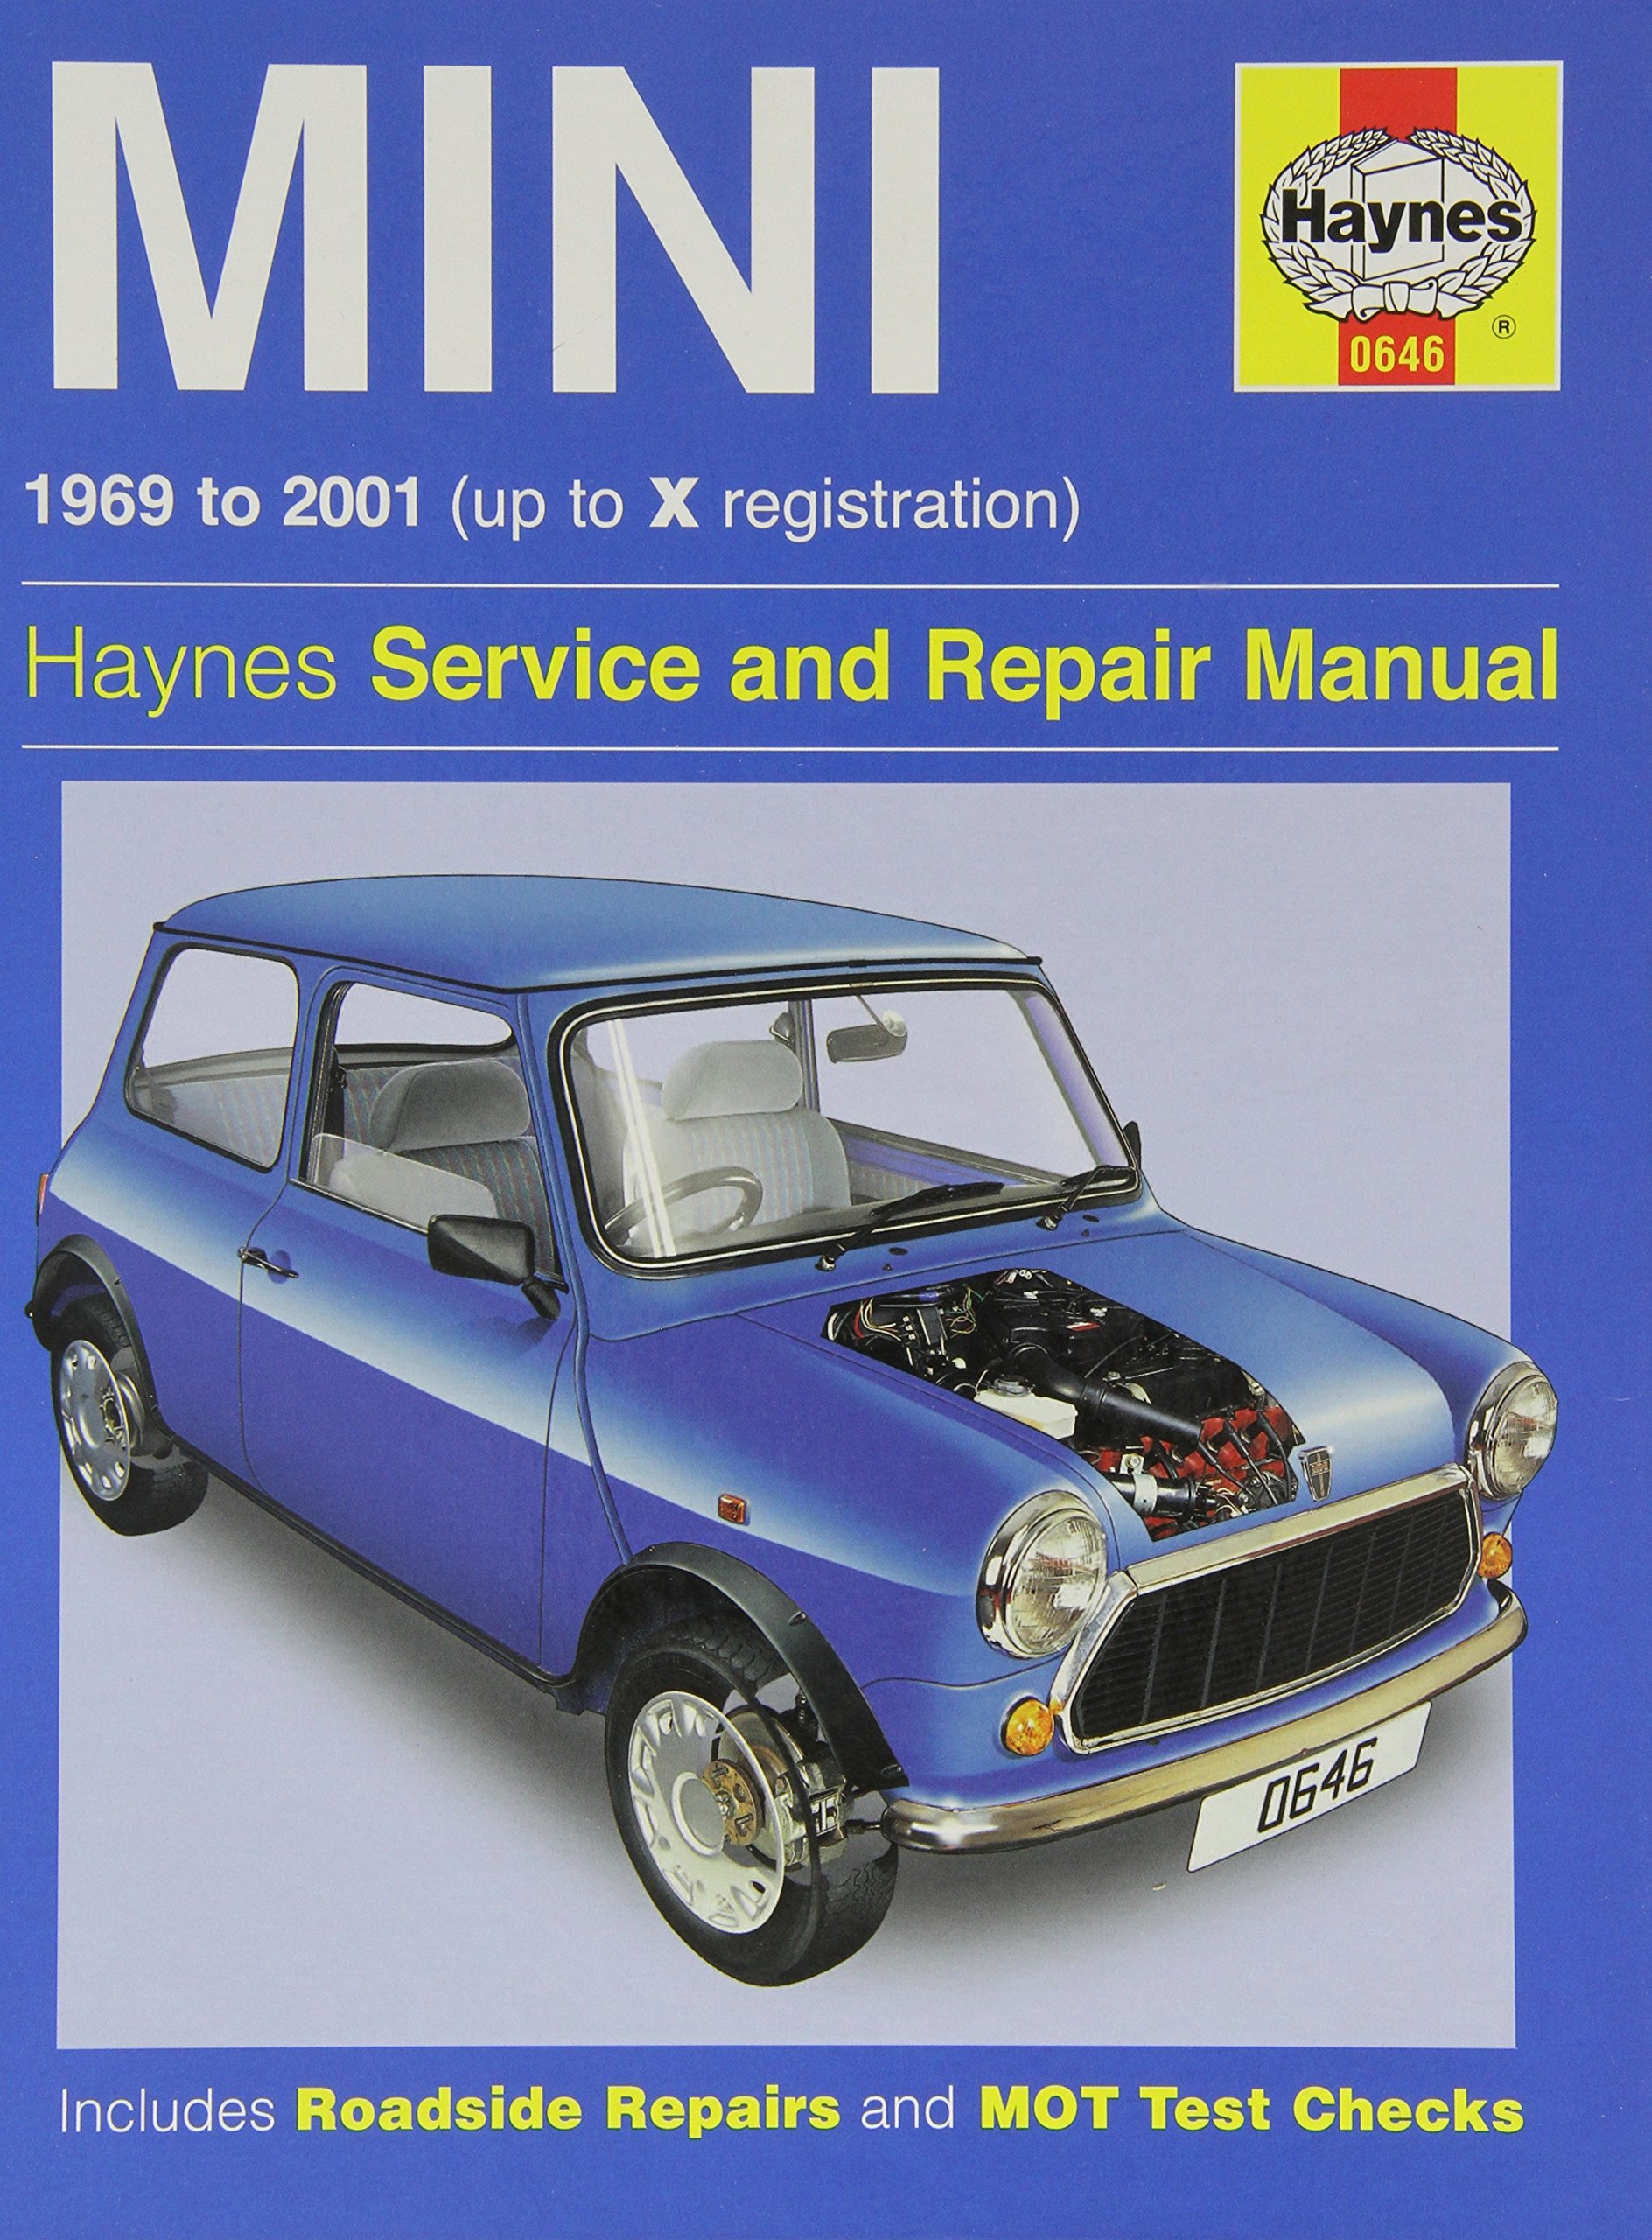 Mini (69-01) (Haynes Service and Repair Manuals): Amazon.co.uk: John S.  Mead: 8601200847352: Books